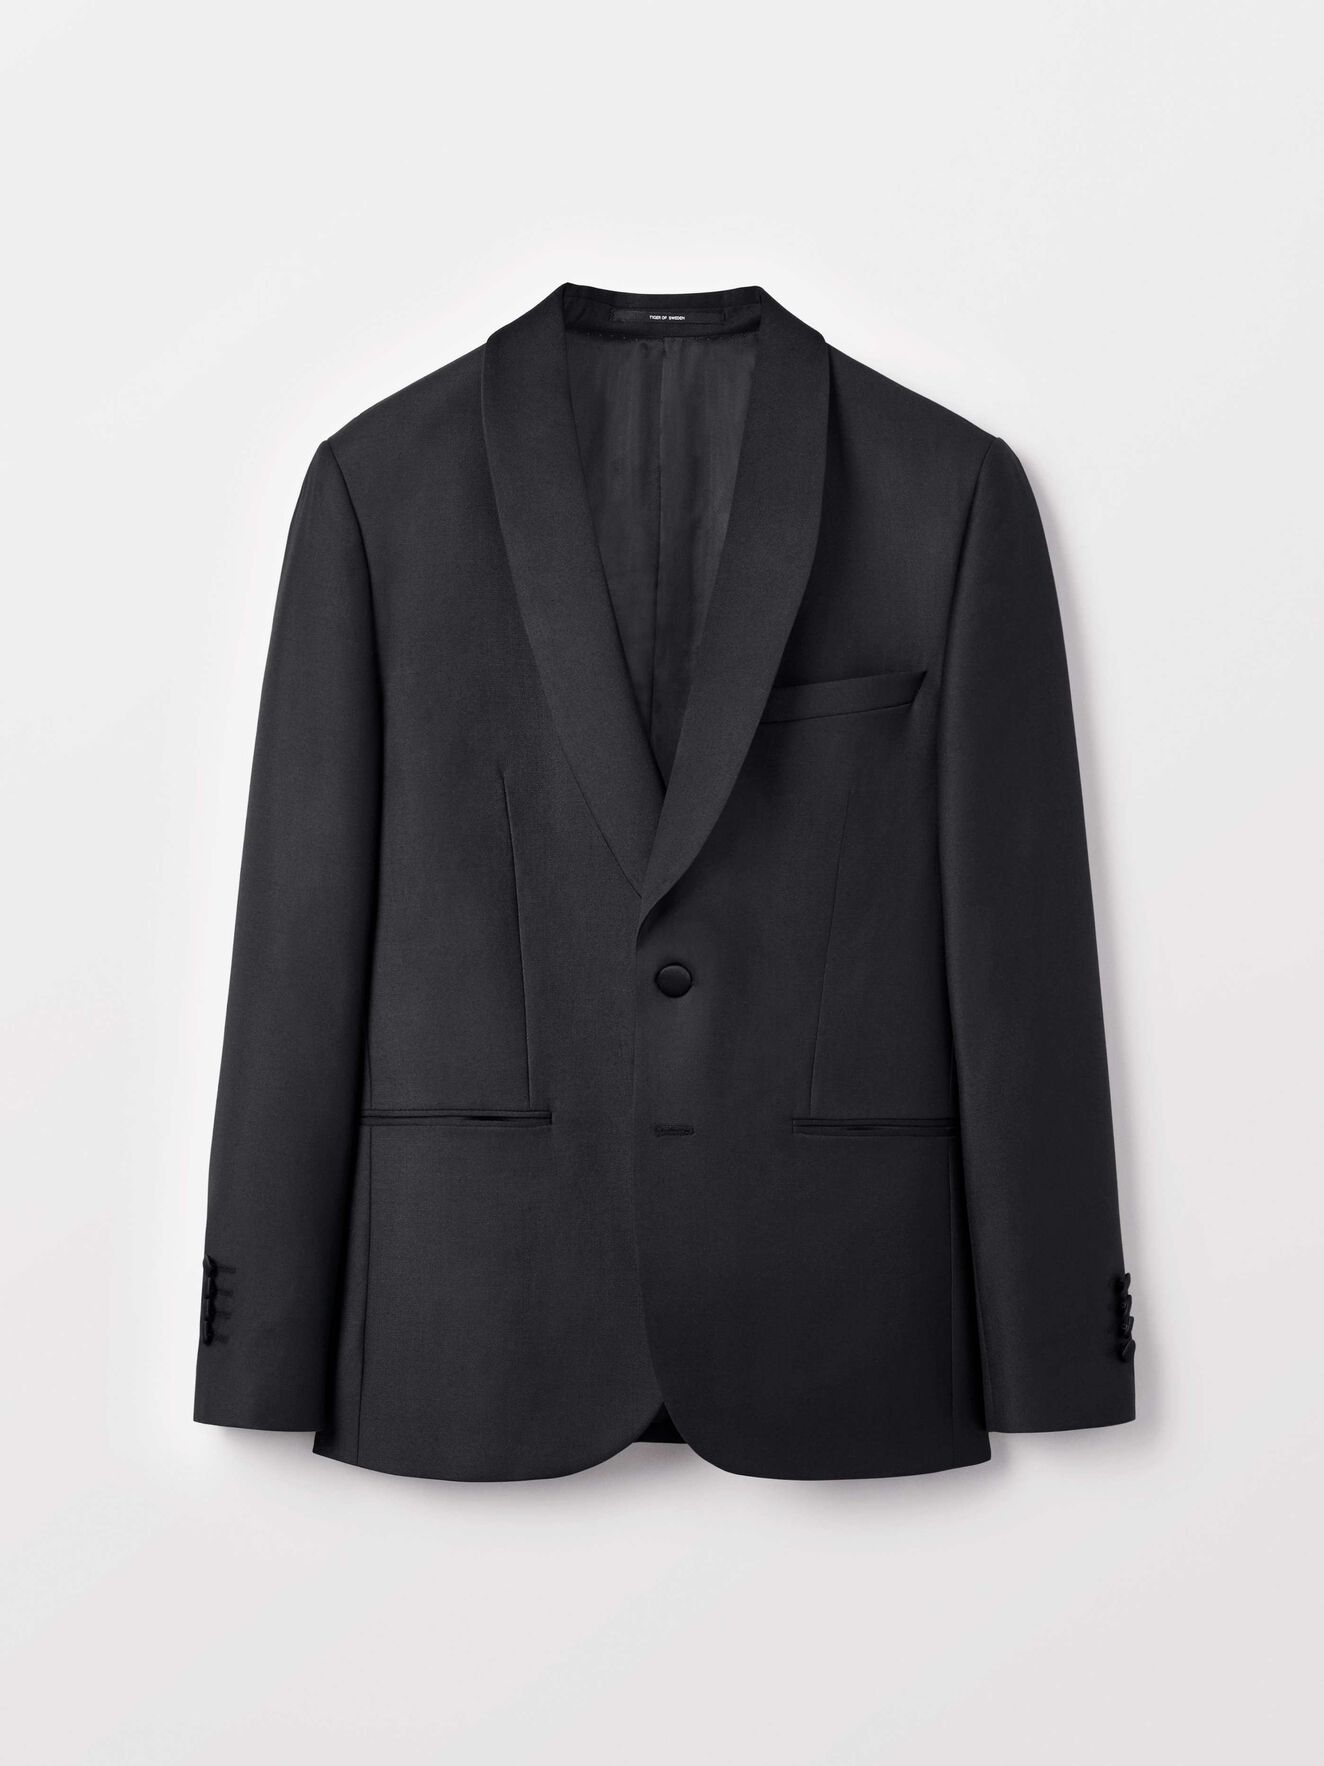 ... Jinatra Blazer in Black from Tiger of Sweden ... a68260d897fe5